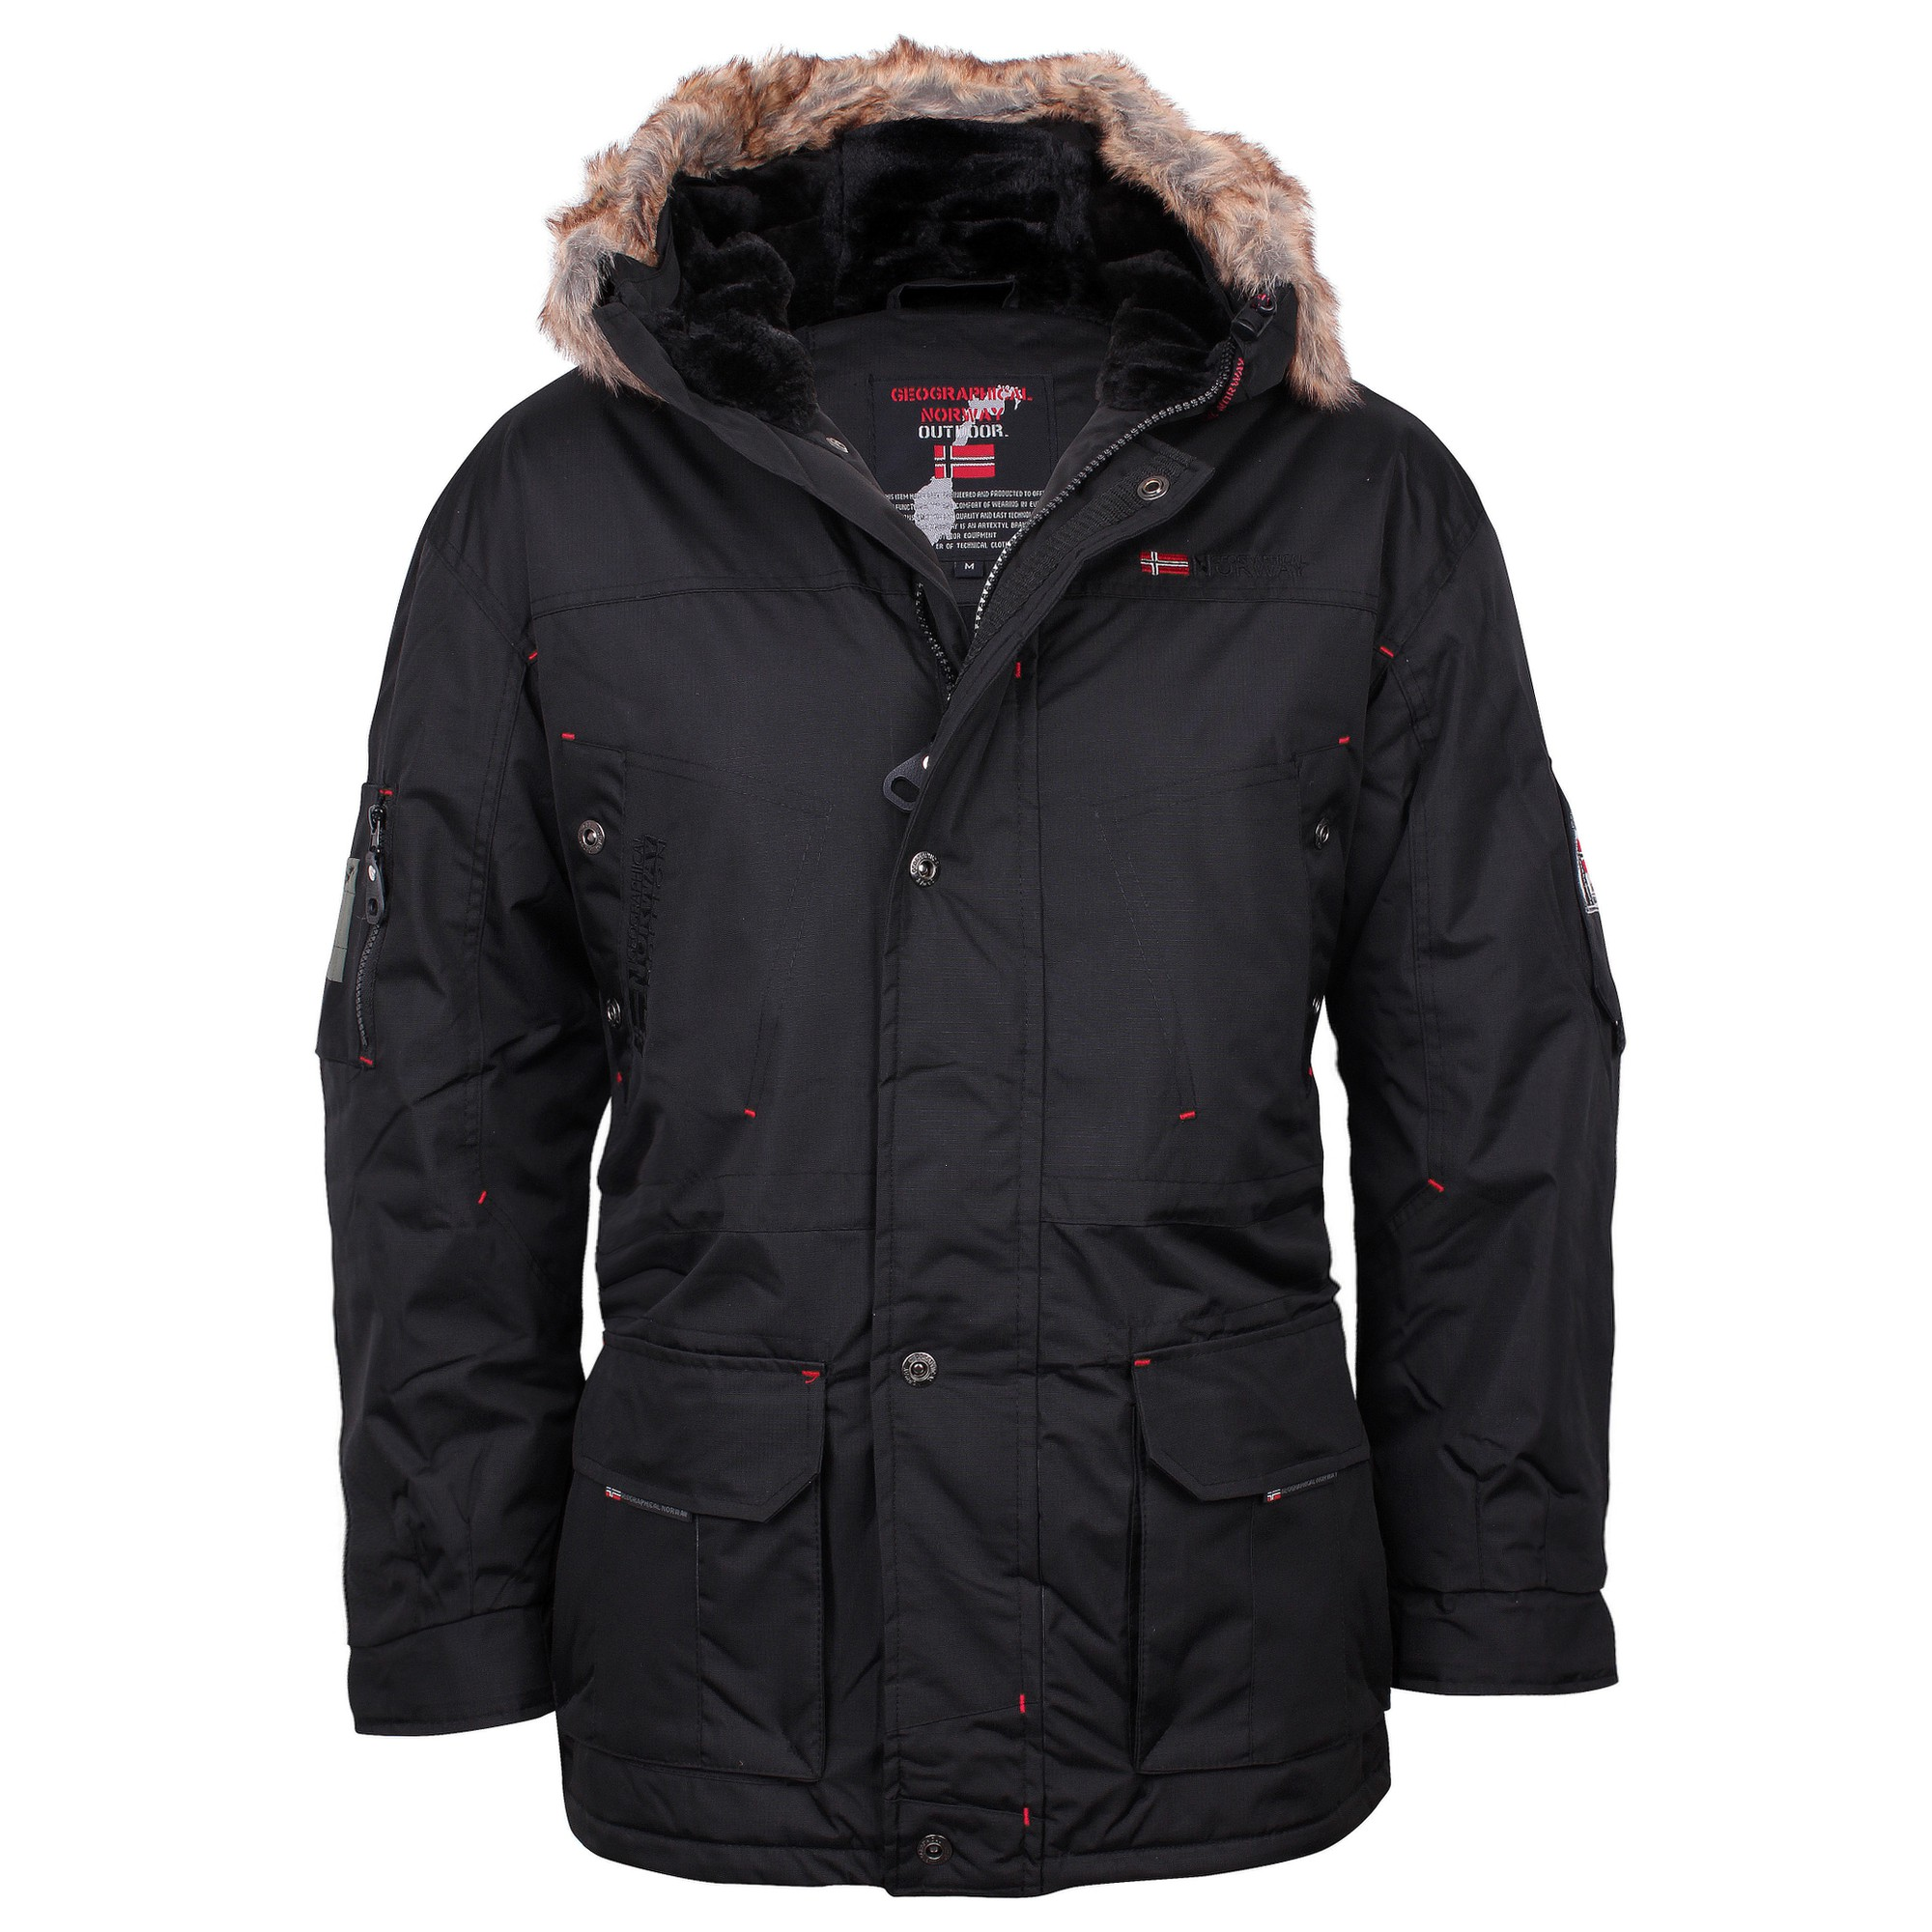 geographical norway winter parka herren jacke winterjacke. Black Bedroom Furniture Sets. Home Design Ideas